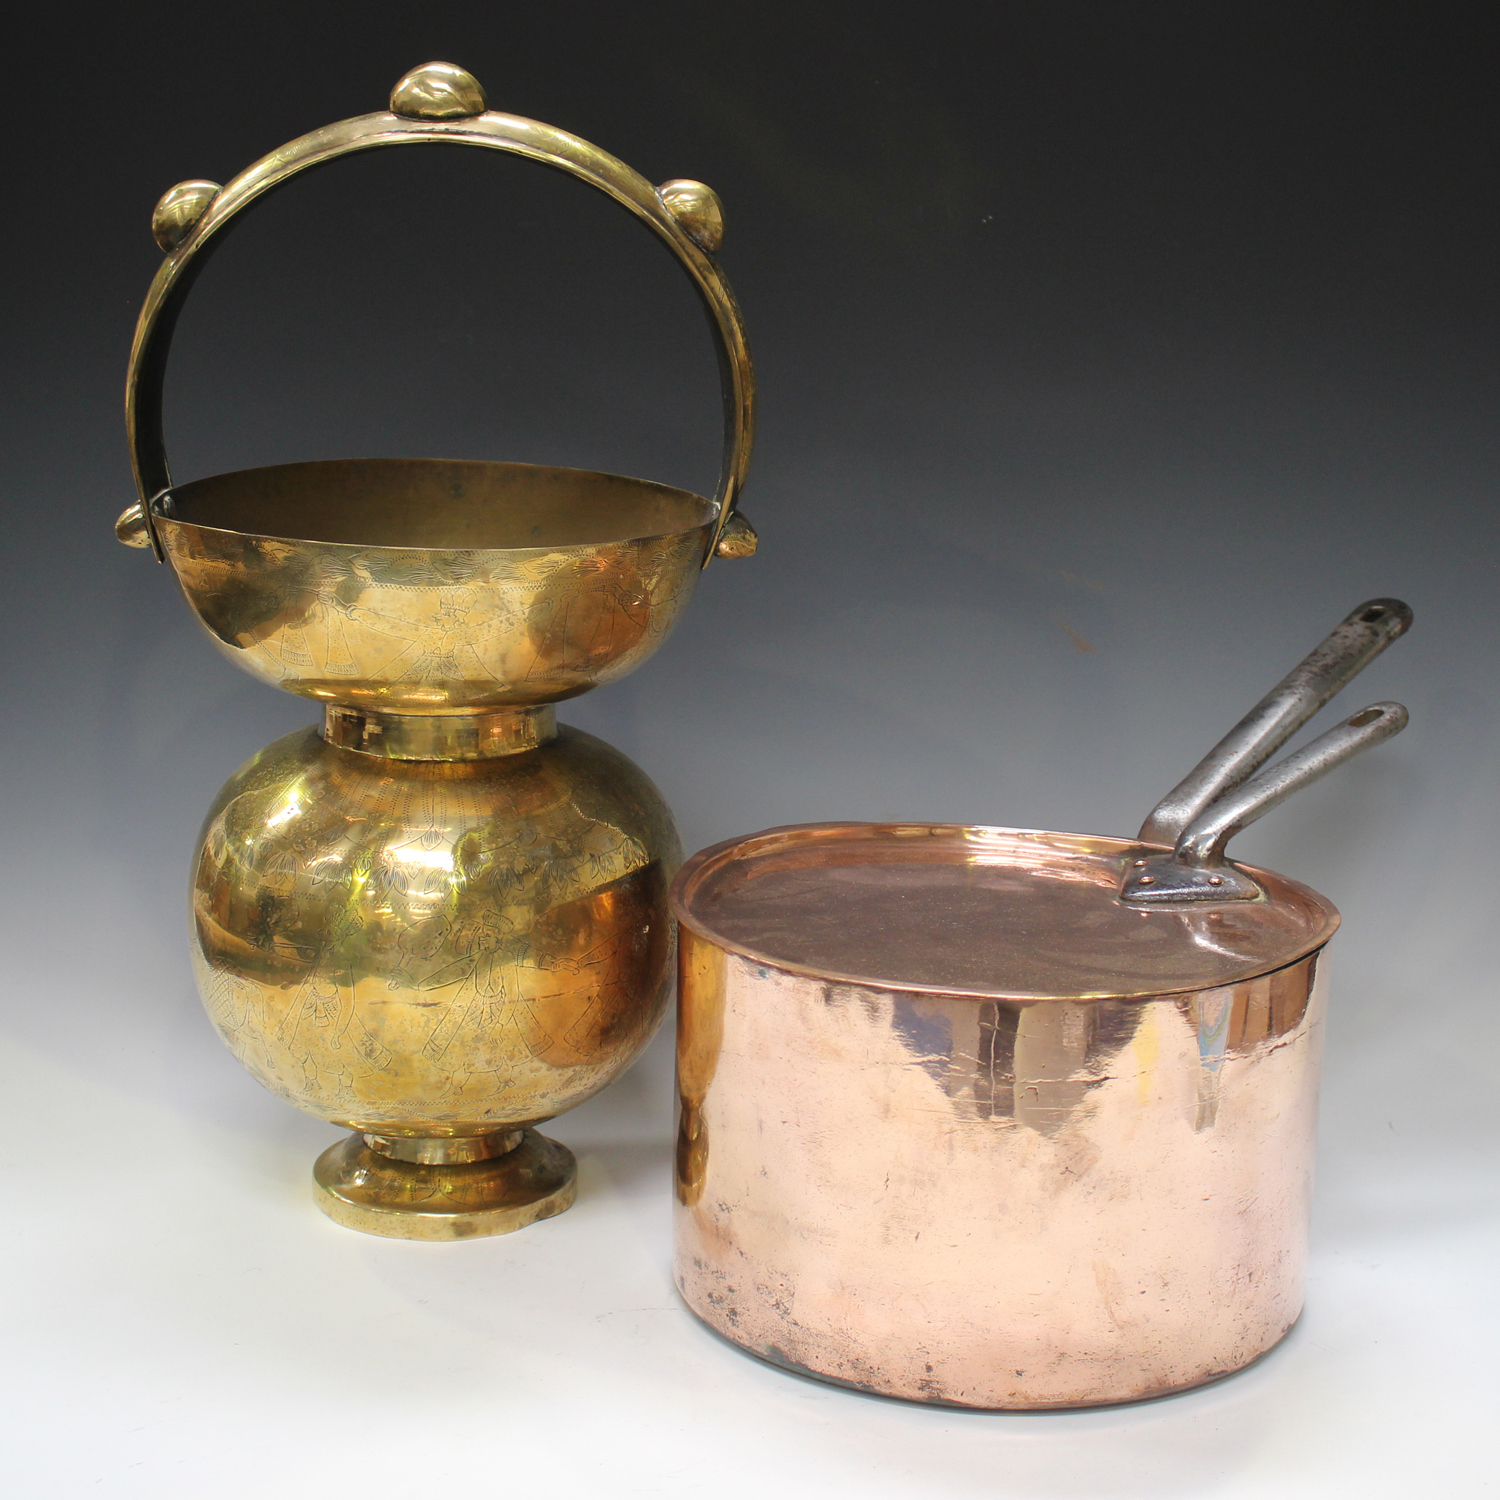 A late 19th/early 20th century copper cooking pan and lid, both with riveted steel handles, diameter